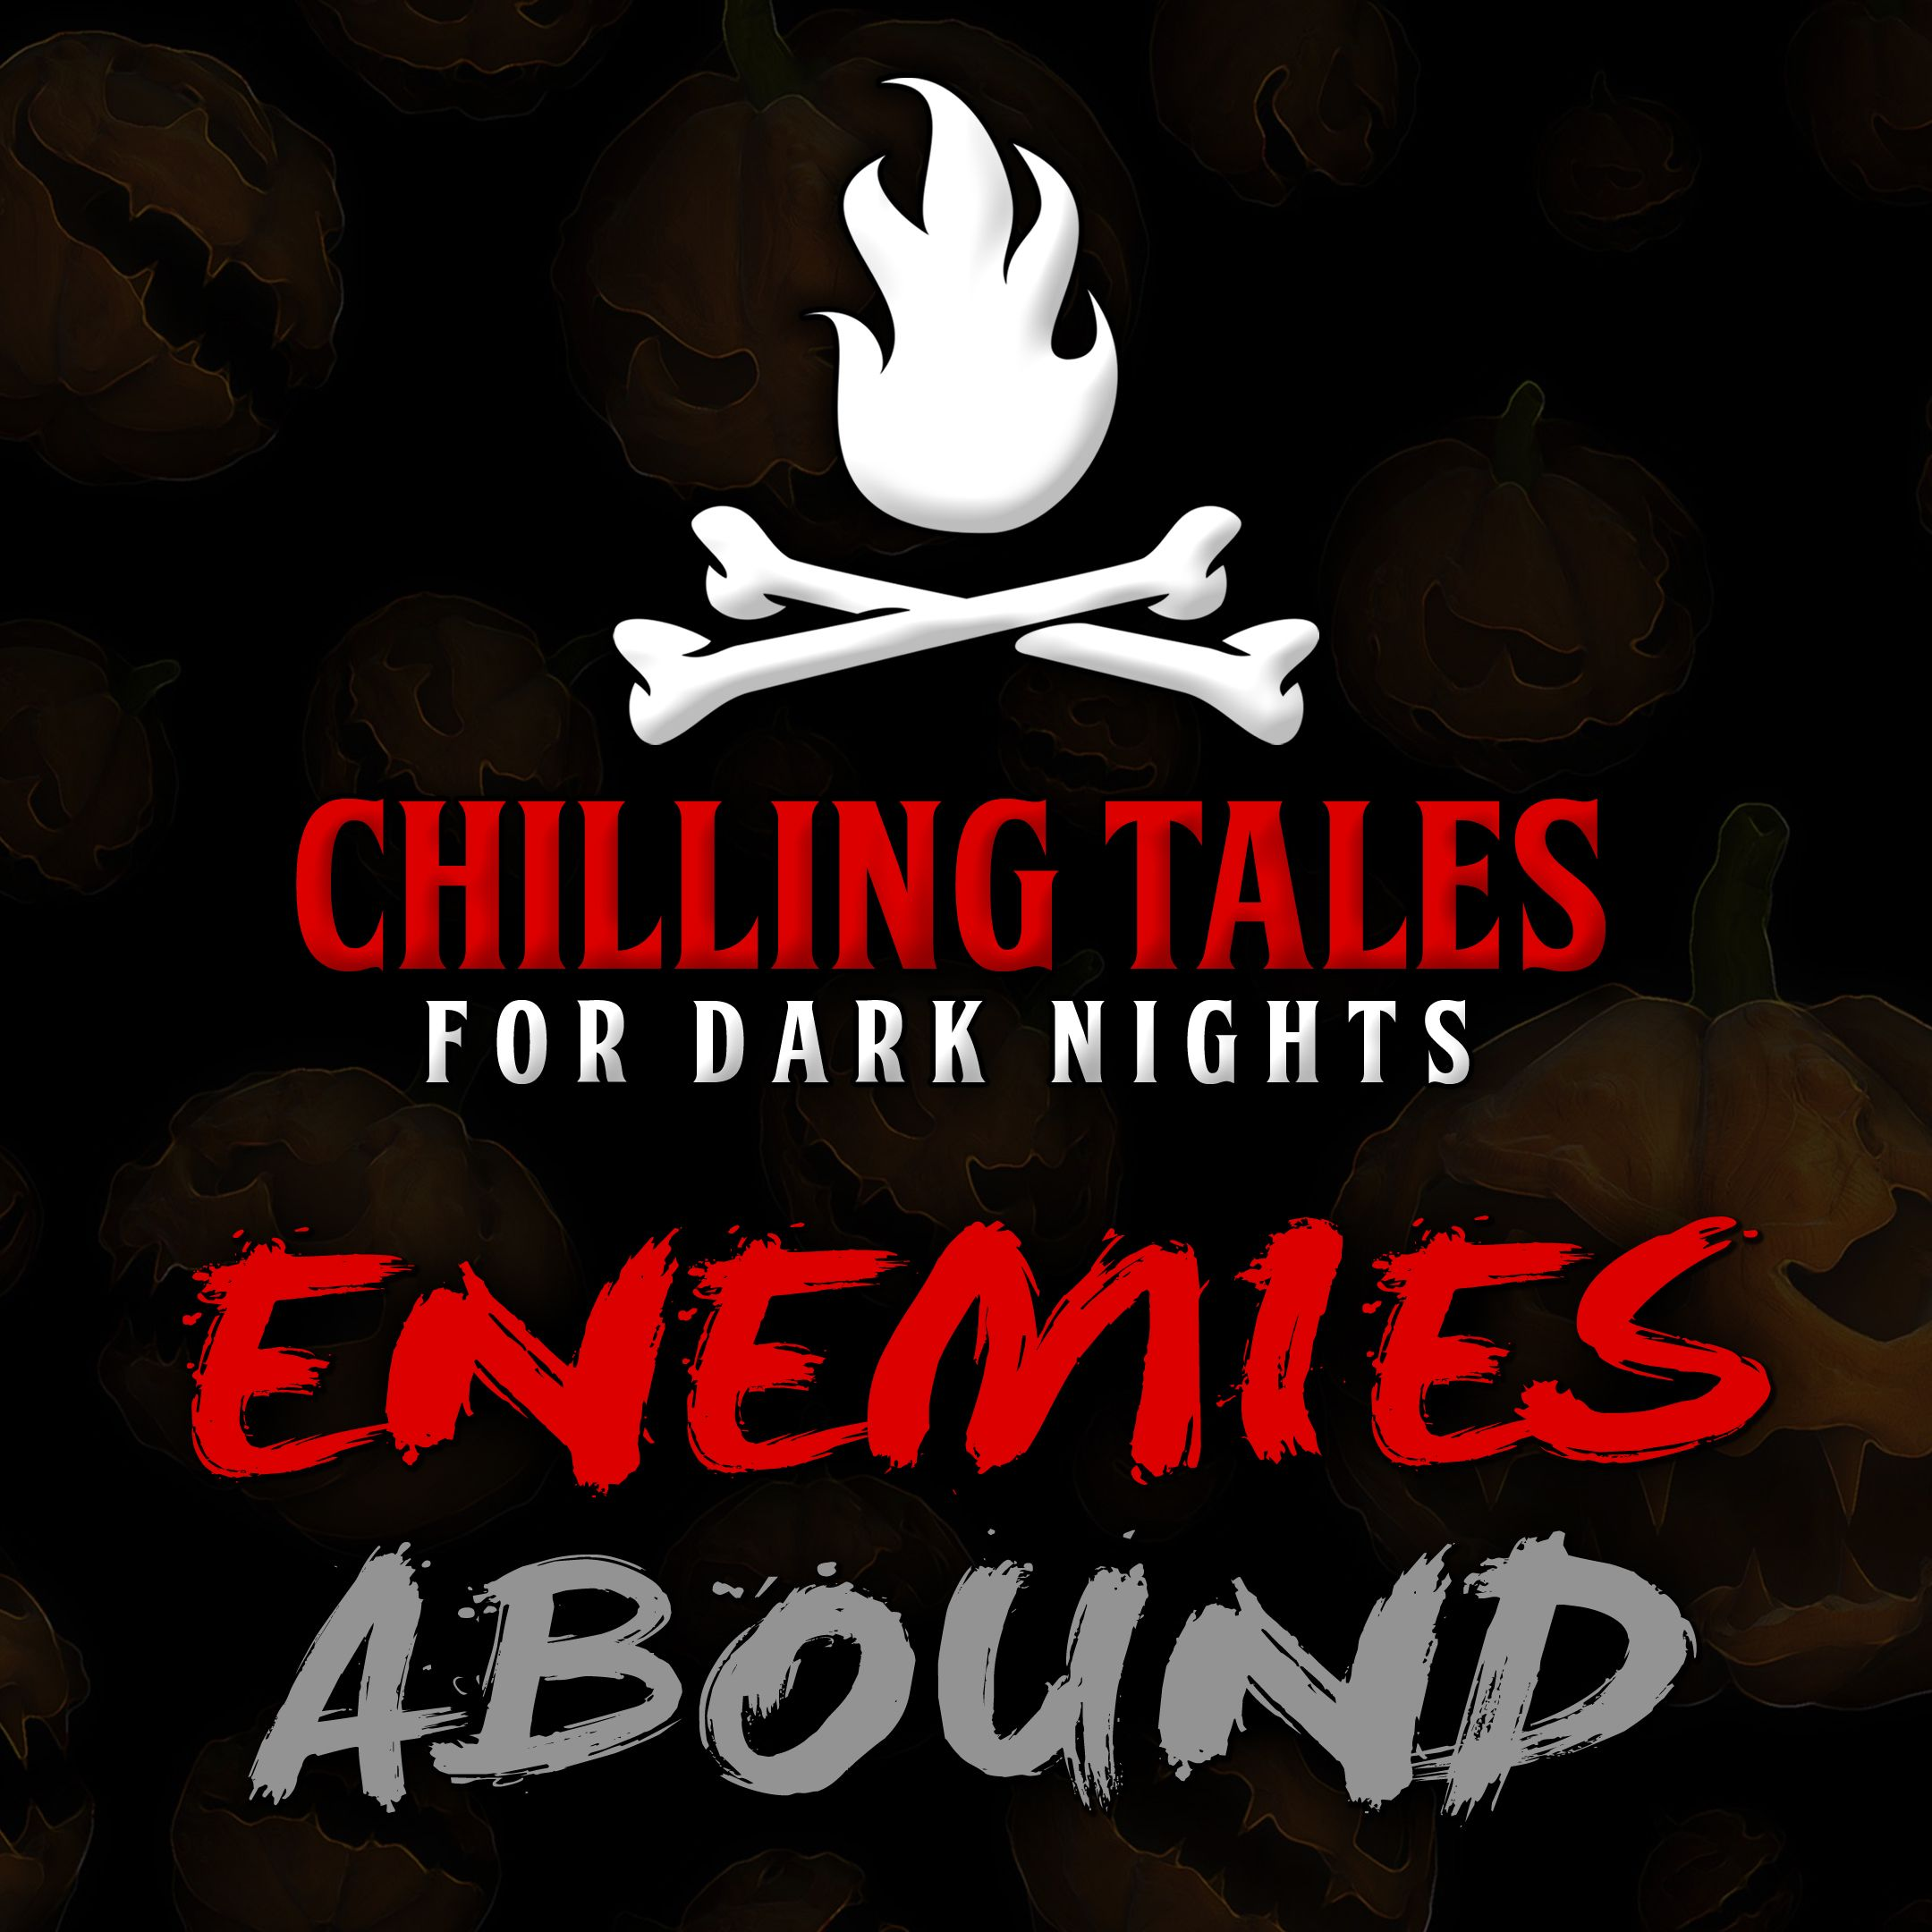 47: Enemies Abound – Chilling Tales for Dark Nights